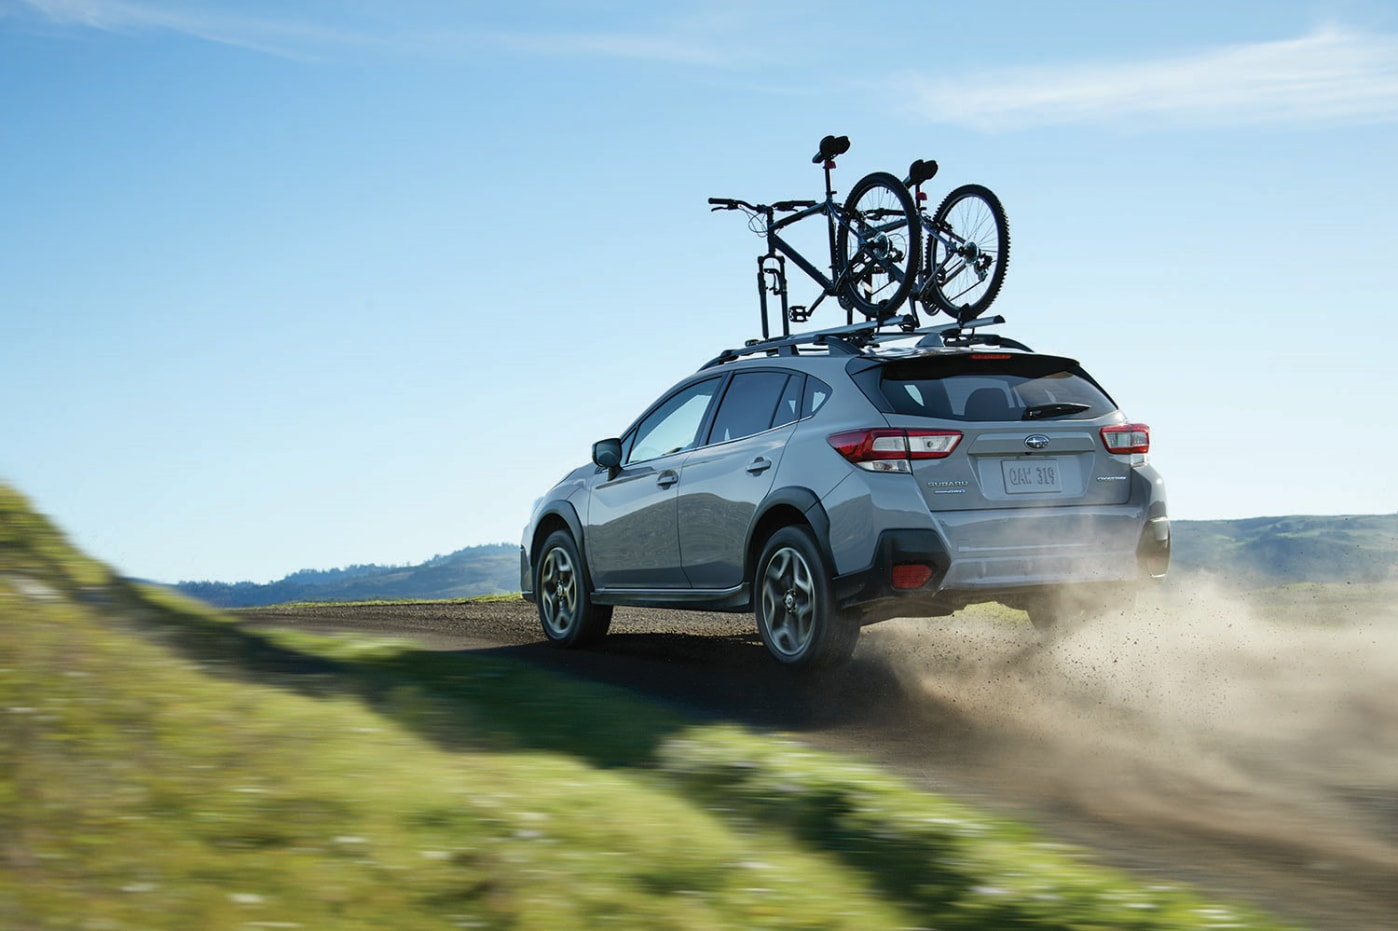 2018 Subaru Crosstrek Off-Road